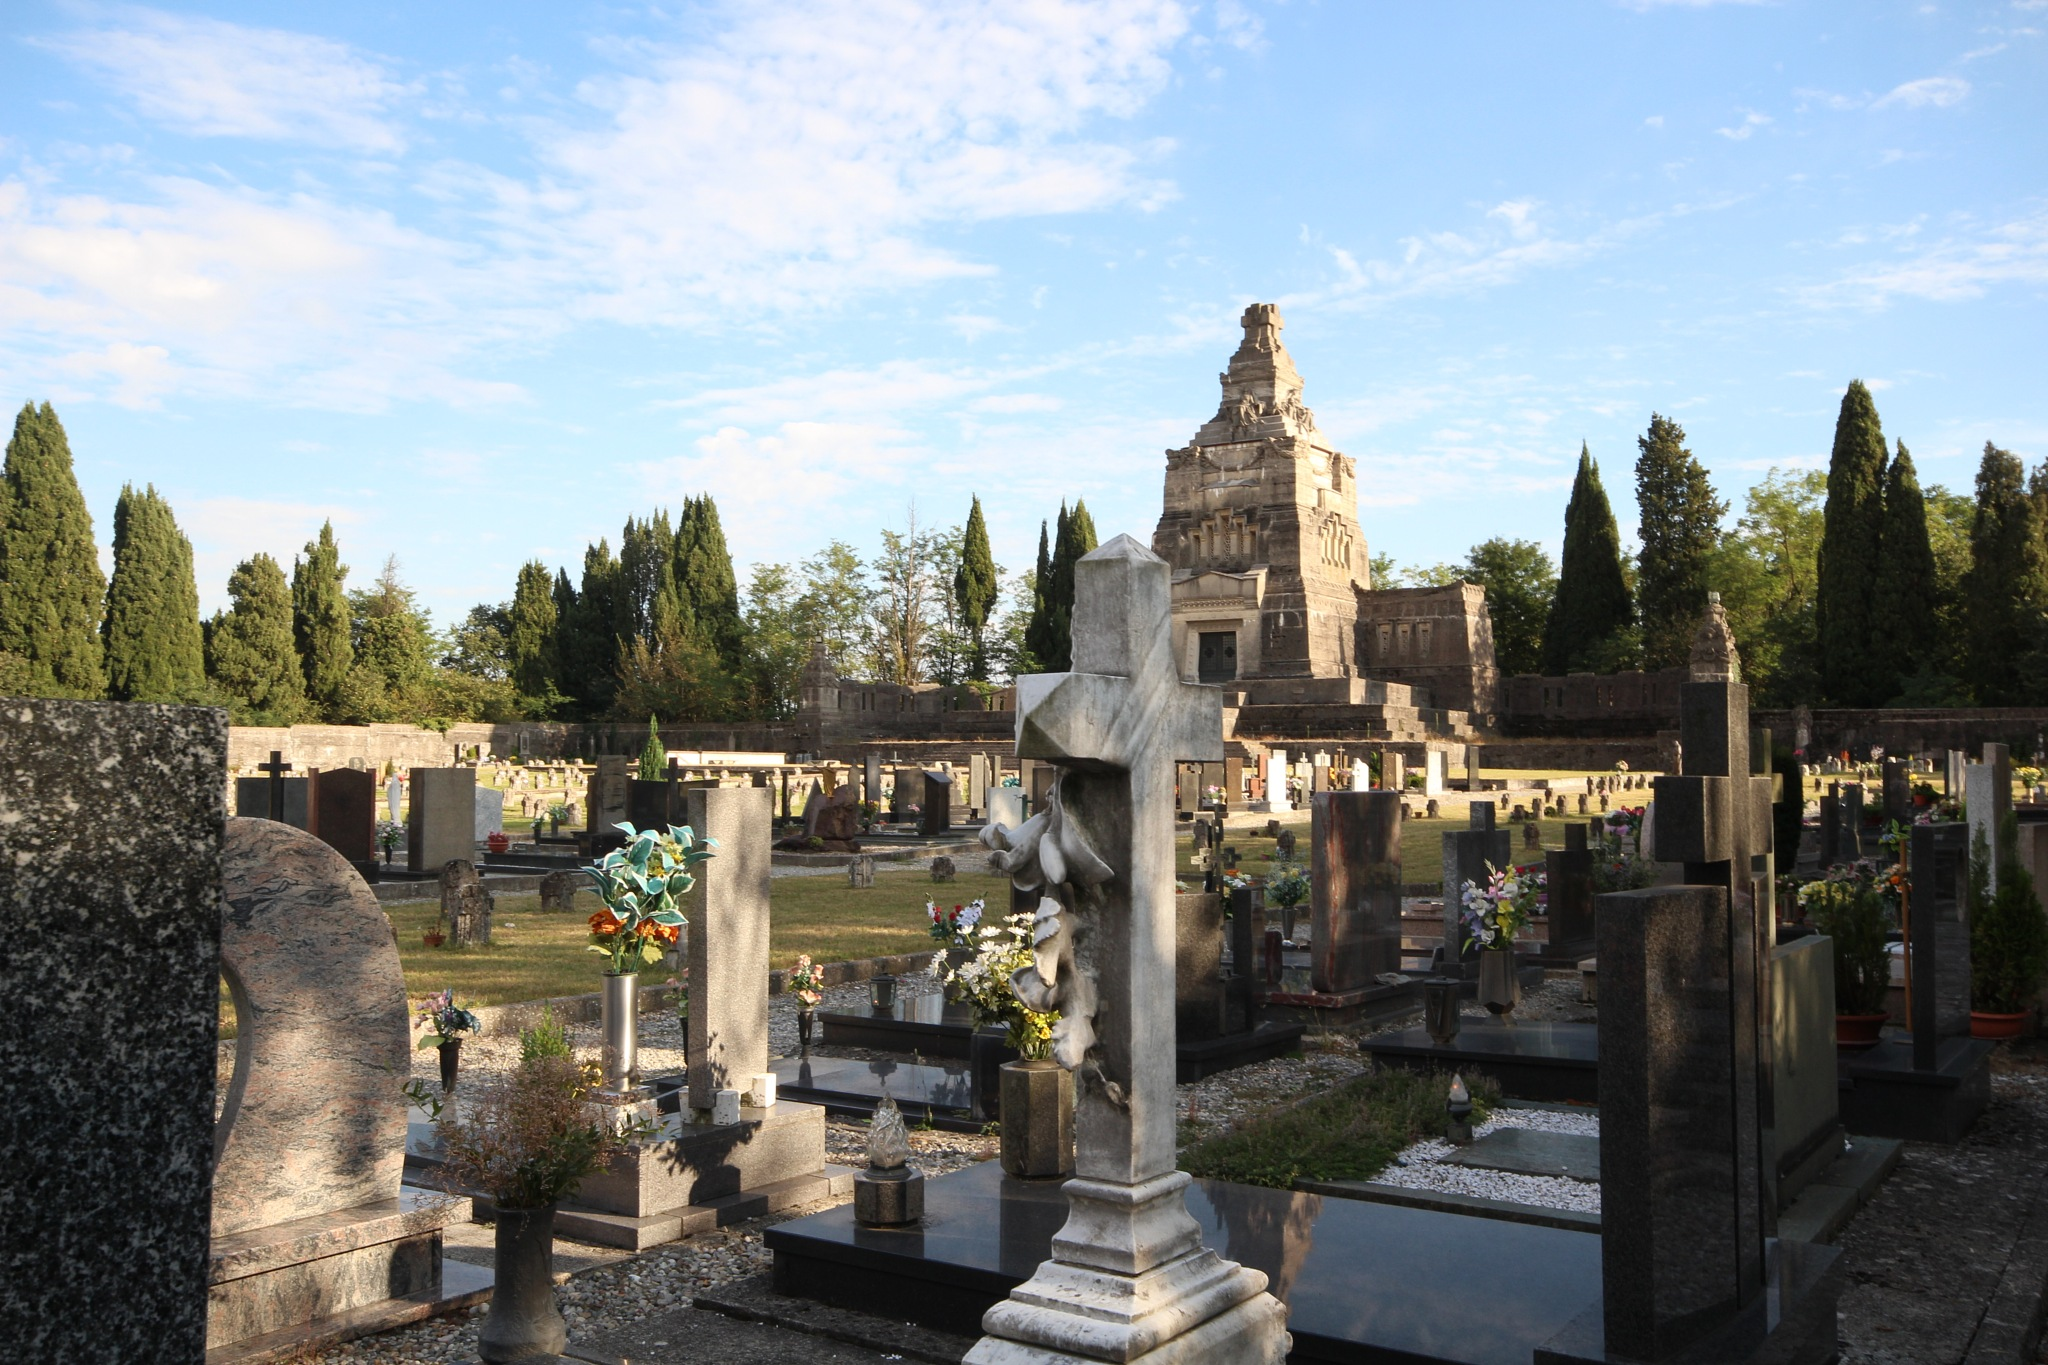 Monumental Cemetery of Crespi d'Adda by Giuseppe Criseo